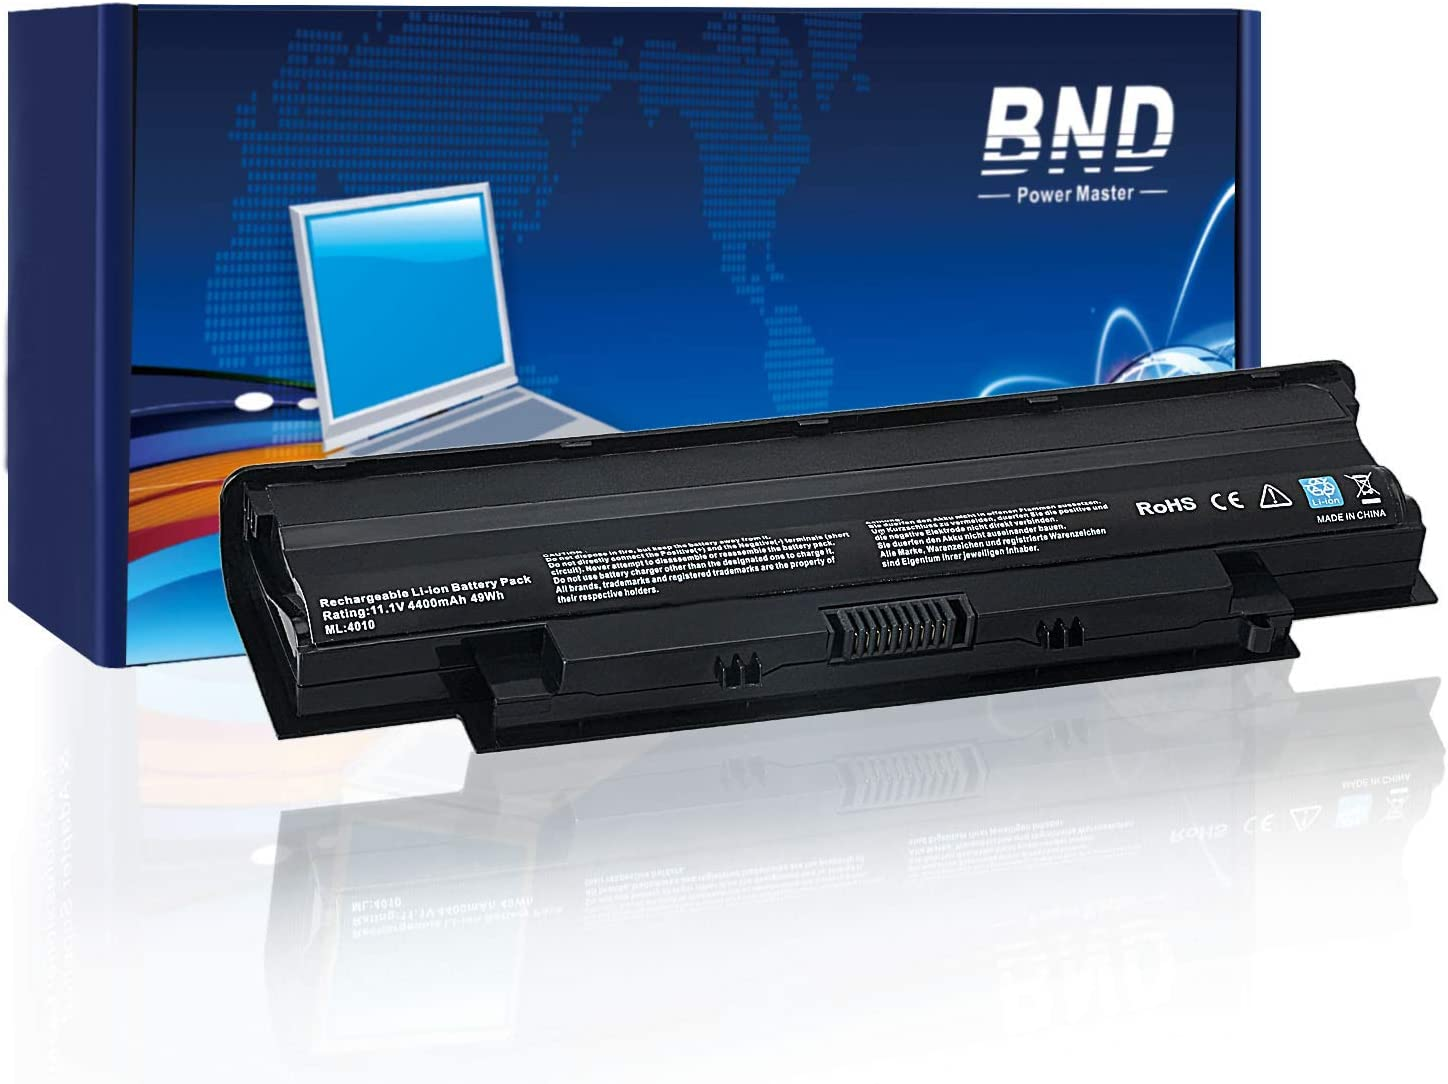 BND J1KND Laptop Battery for Dell N7110 N7010 N5010 N5040 N5050 N4010 N4110 M5030 M5110, Vostro 3450 3550 3750 3550N,fits P/N 9T48V 04YRJH [6-Cell 4400mAh/49Wh]